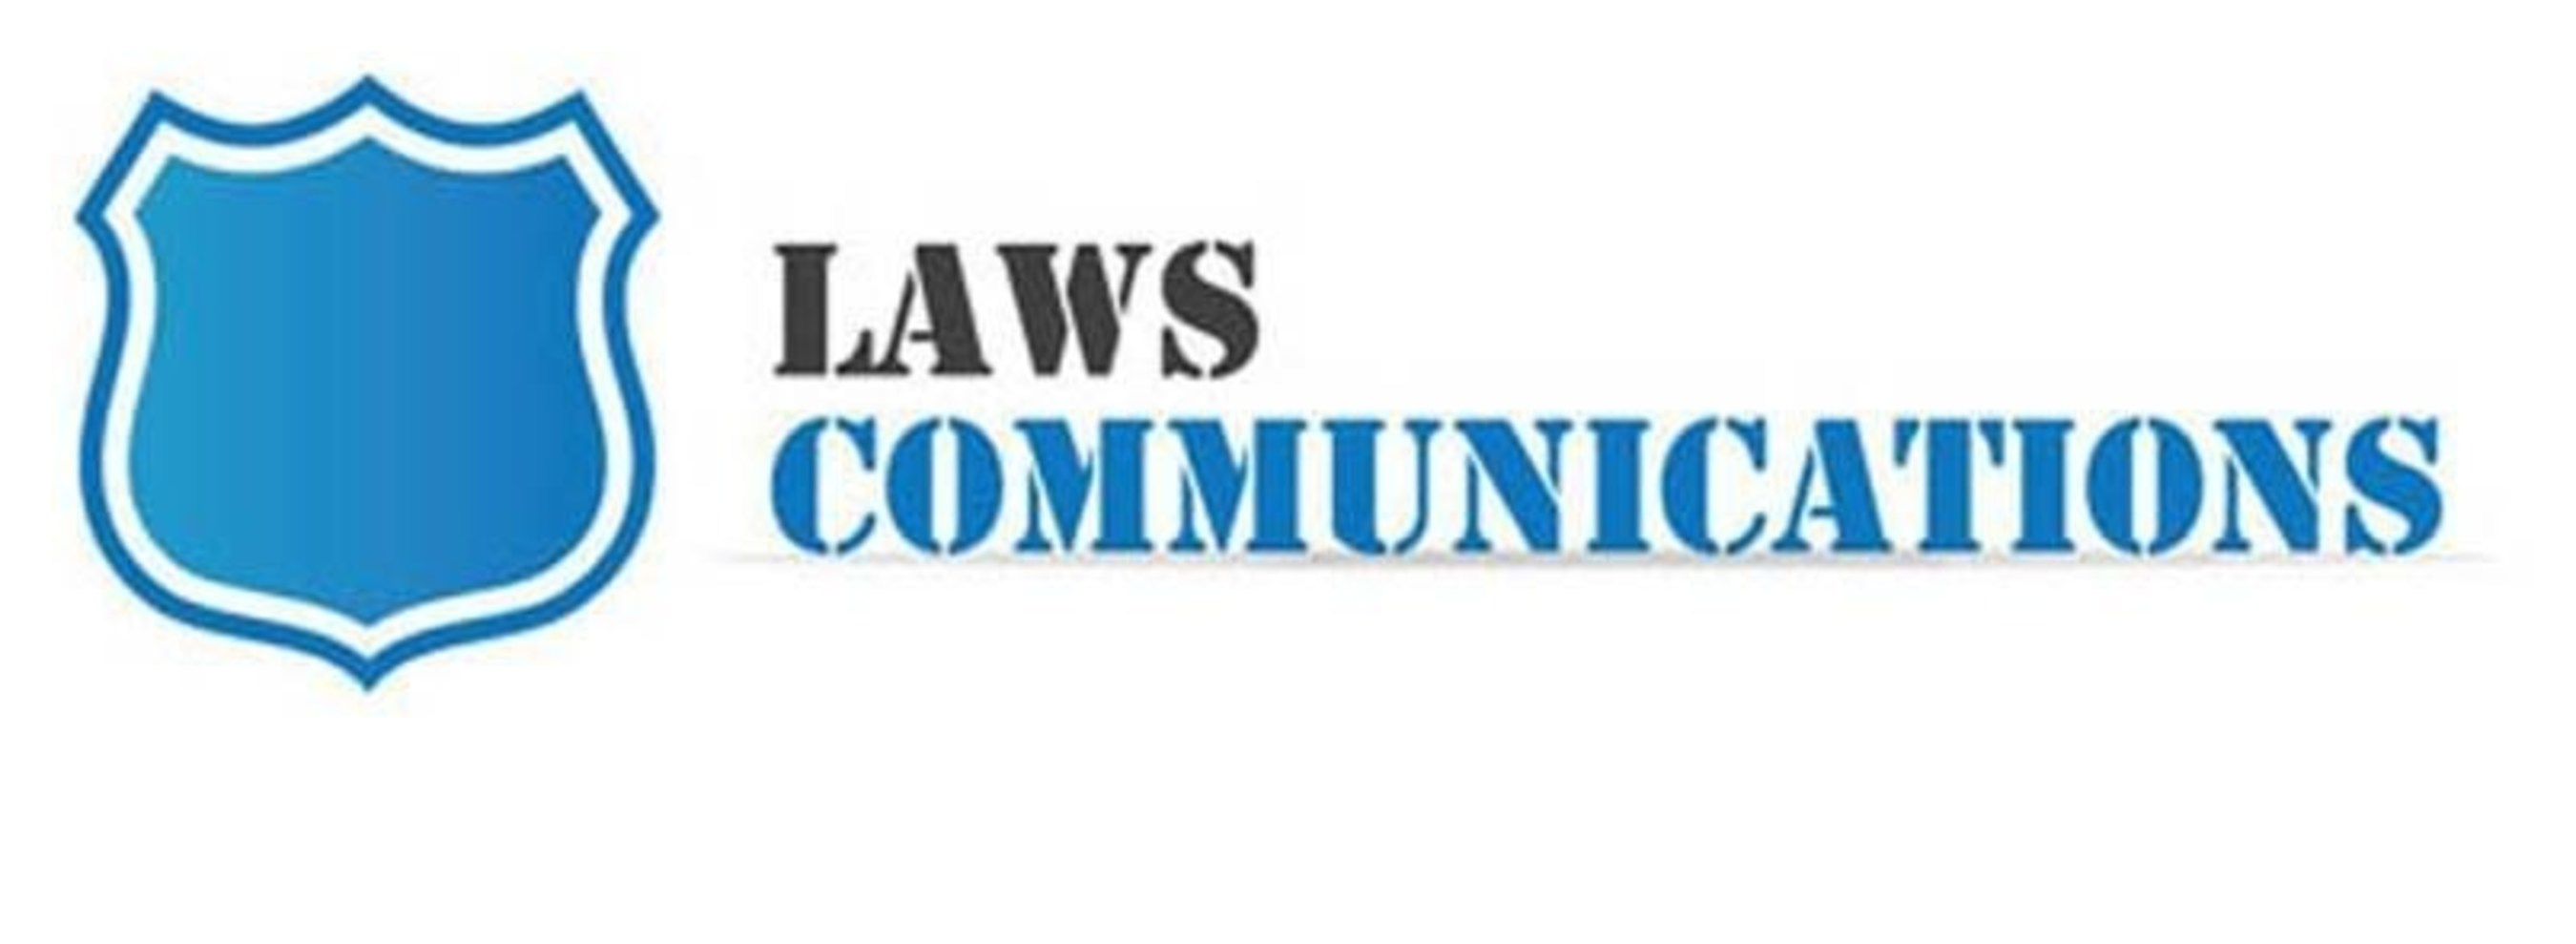 Fourth Global Police Tweet-a-Thon - #POLTwt - Scheduled for December 19 by LAwS Communications.